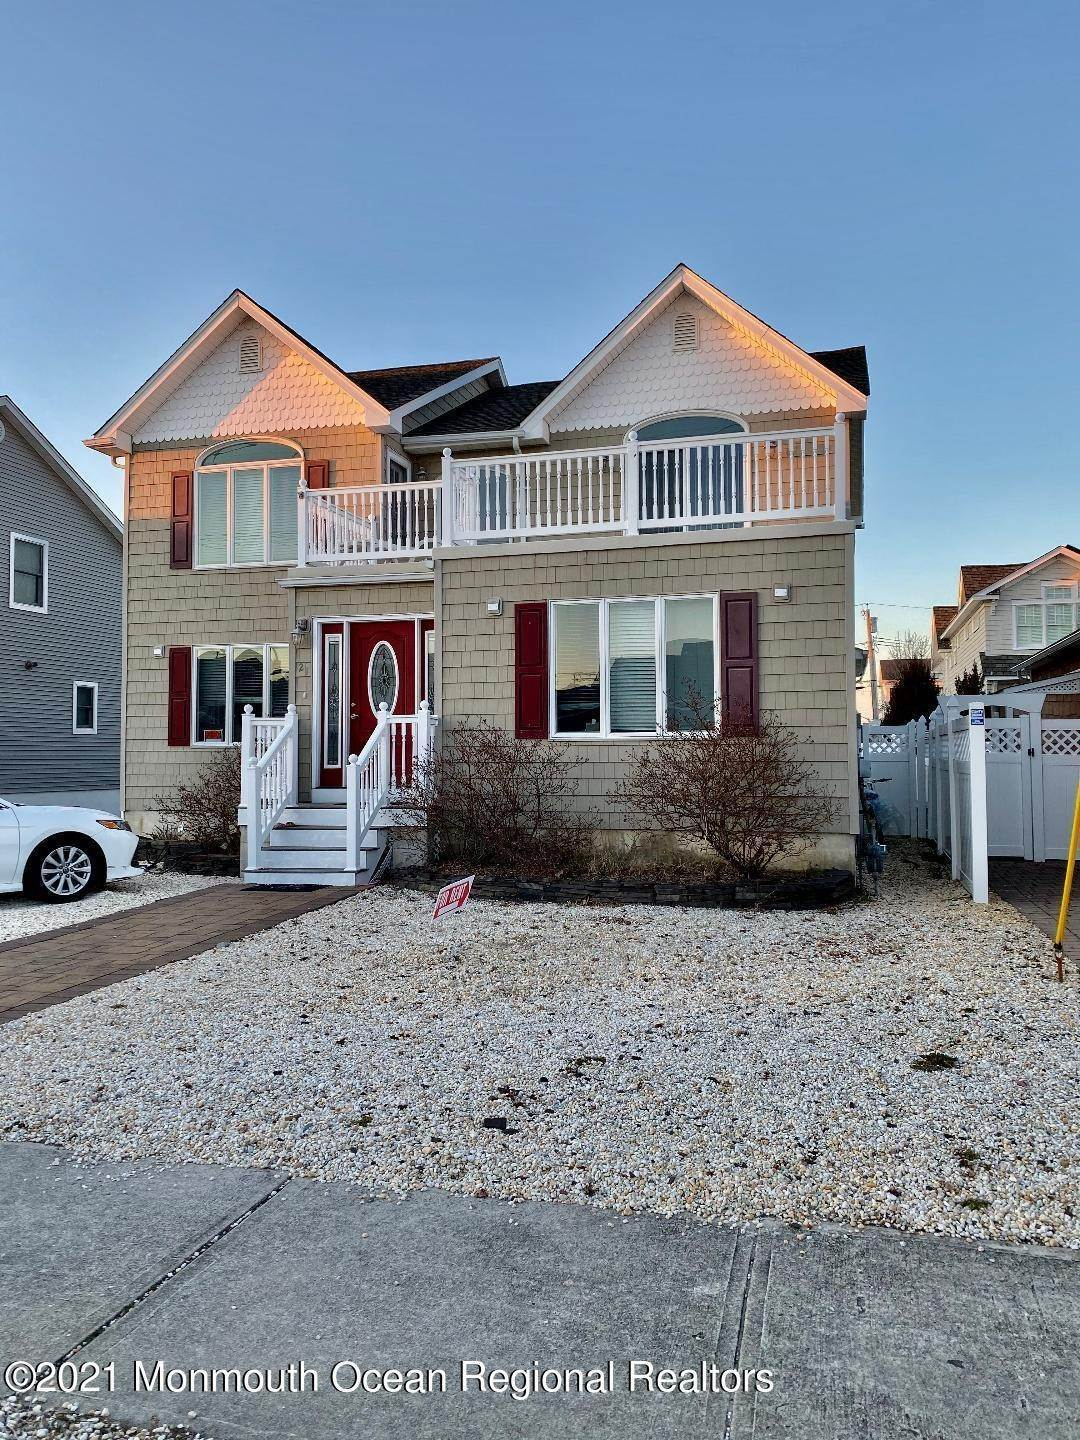 Single Family Home for Rent at 21 Magee Avenue Lavallette, New Jersey, 08735 United States